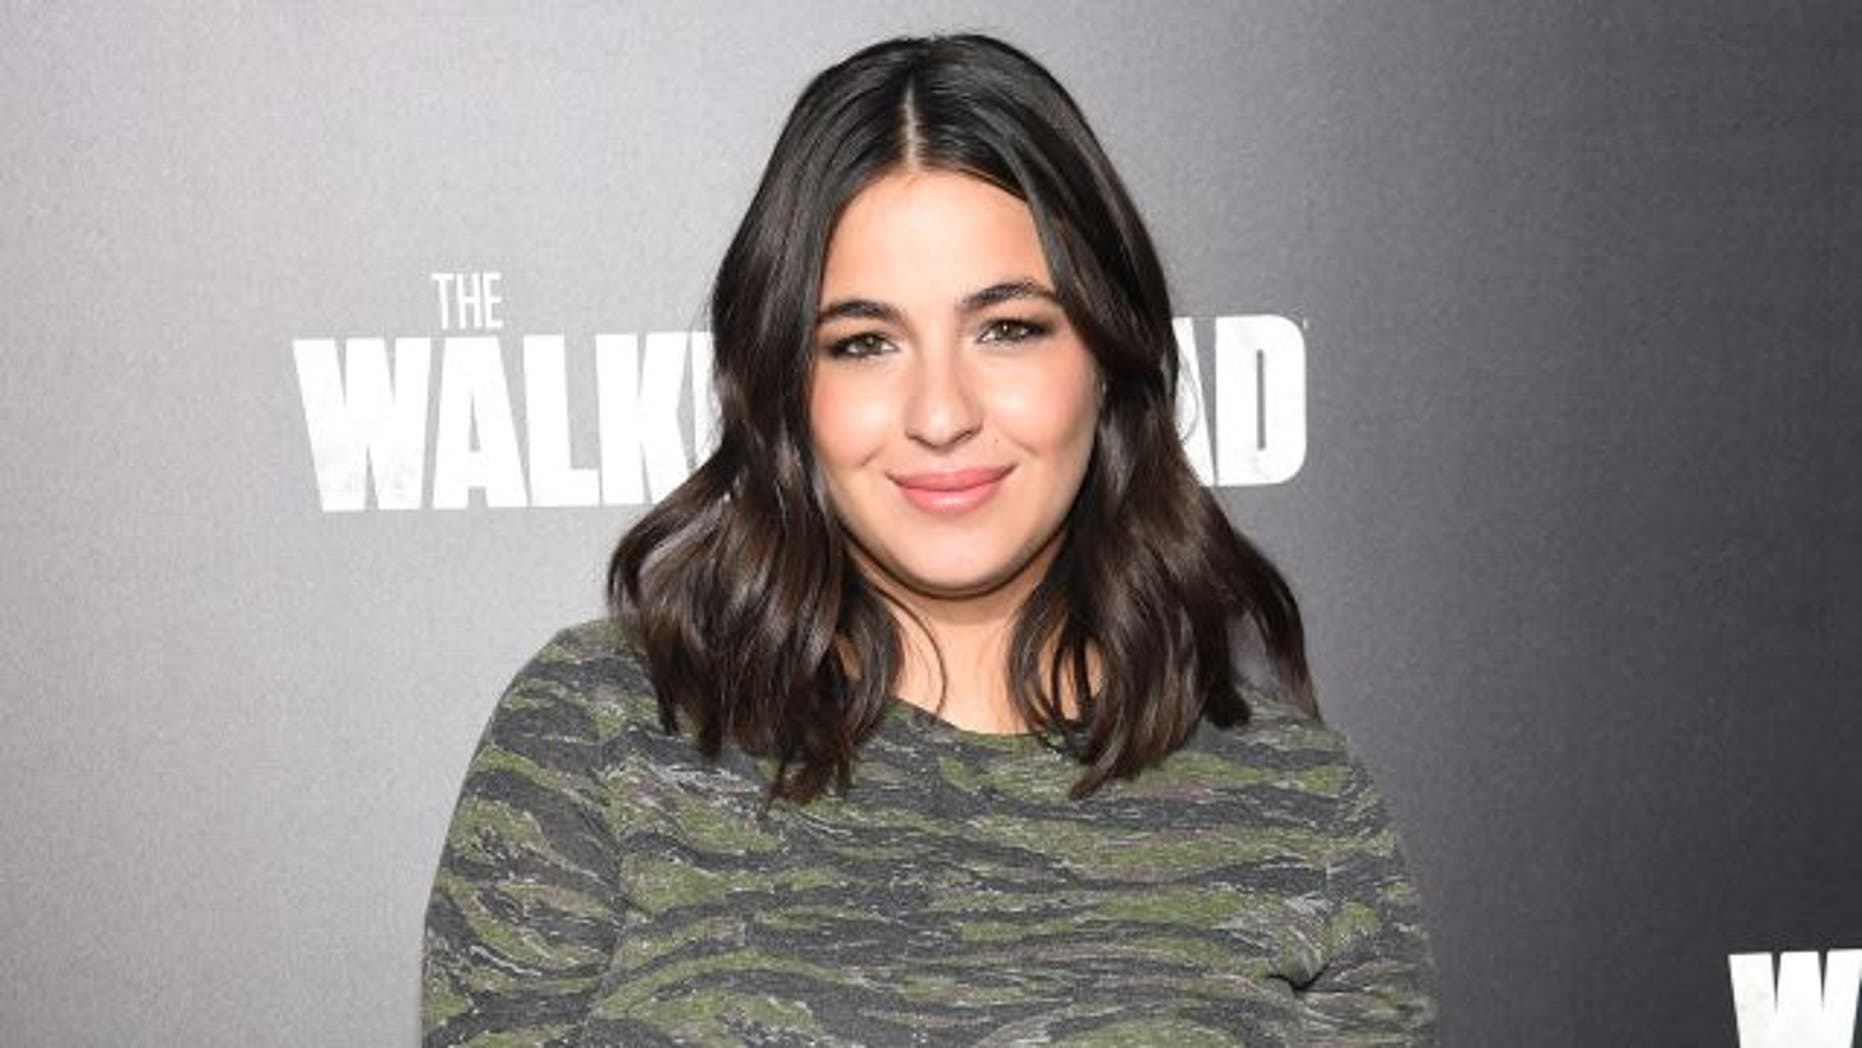 'The Walking Dead' star Alanna Masterson has slammed body shamers.